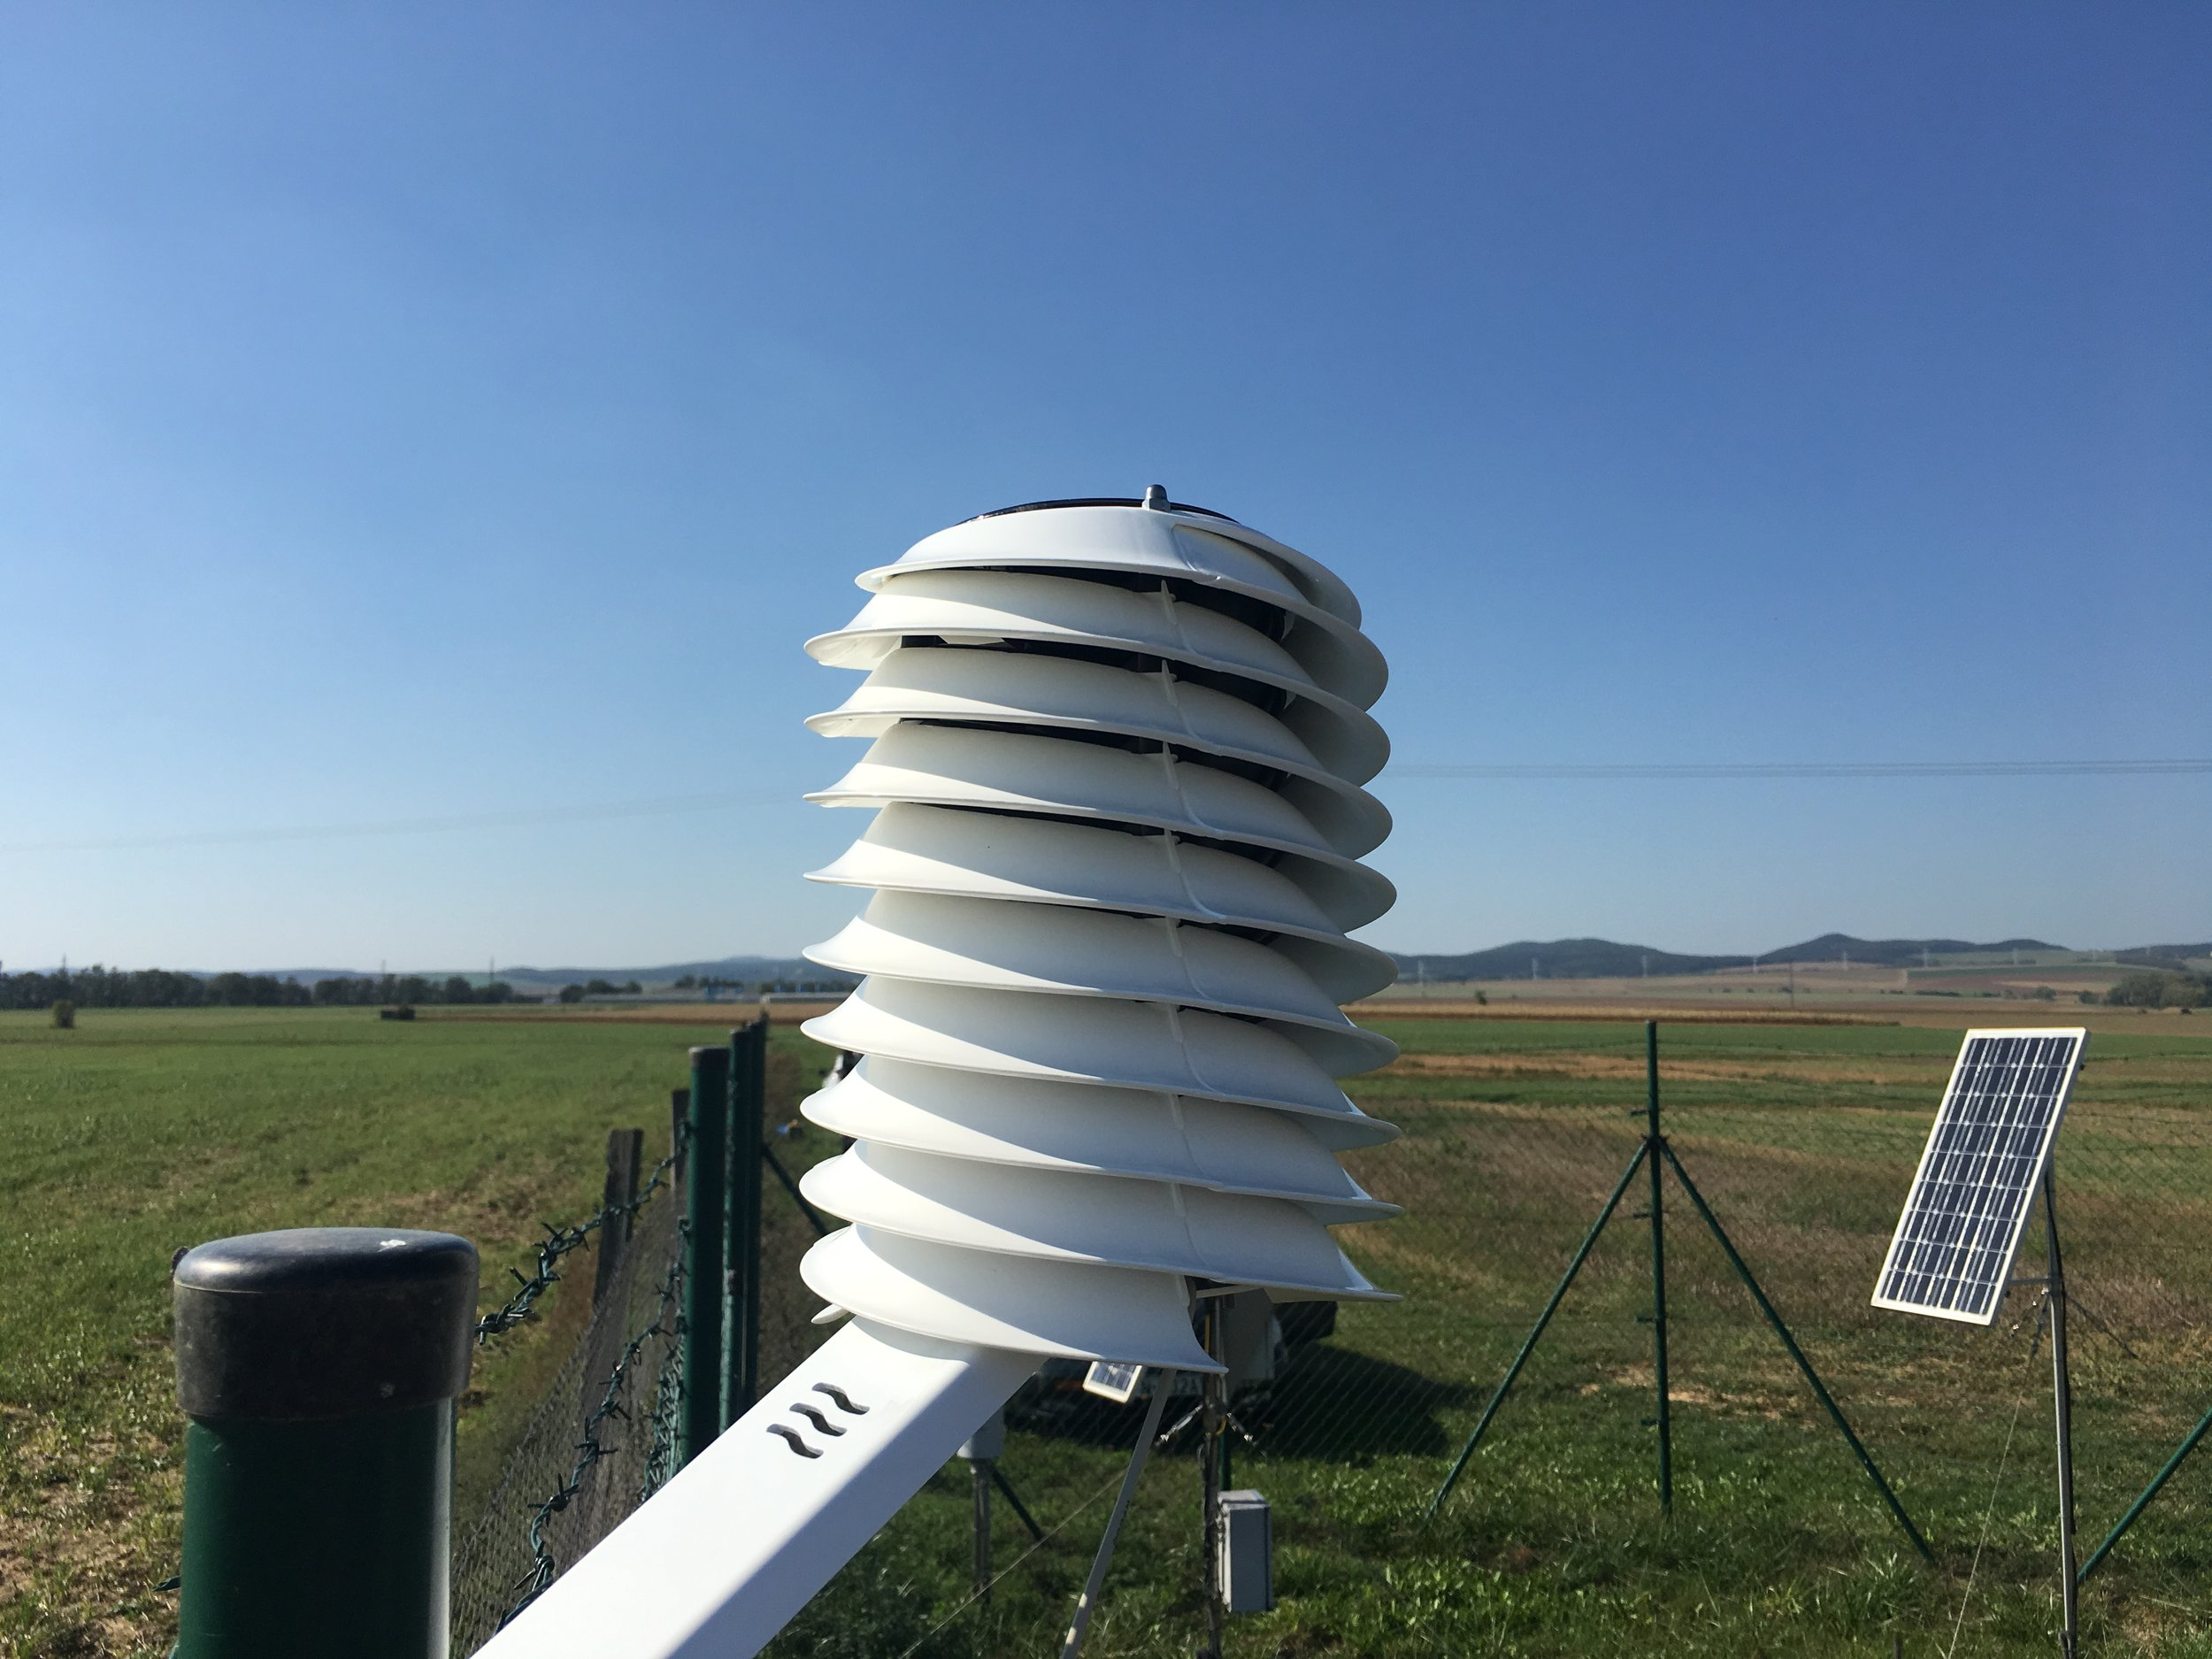 BARANI DESIGN MeteoHelix IoT Pro agricultural weather station overlooking farm field experiments